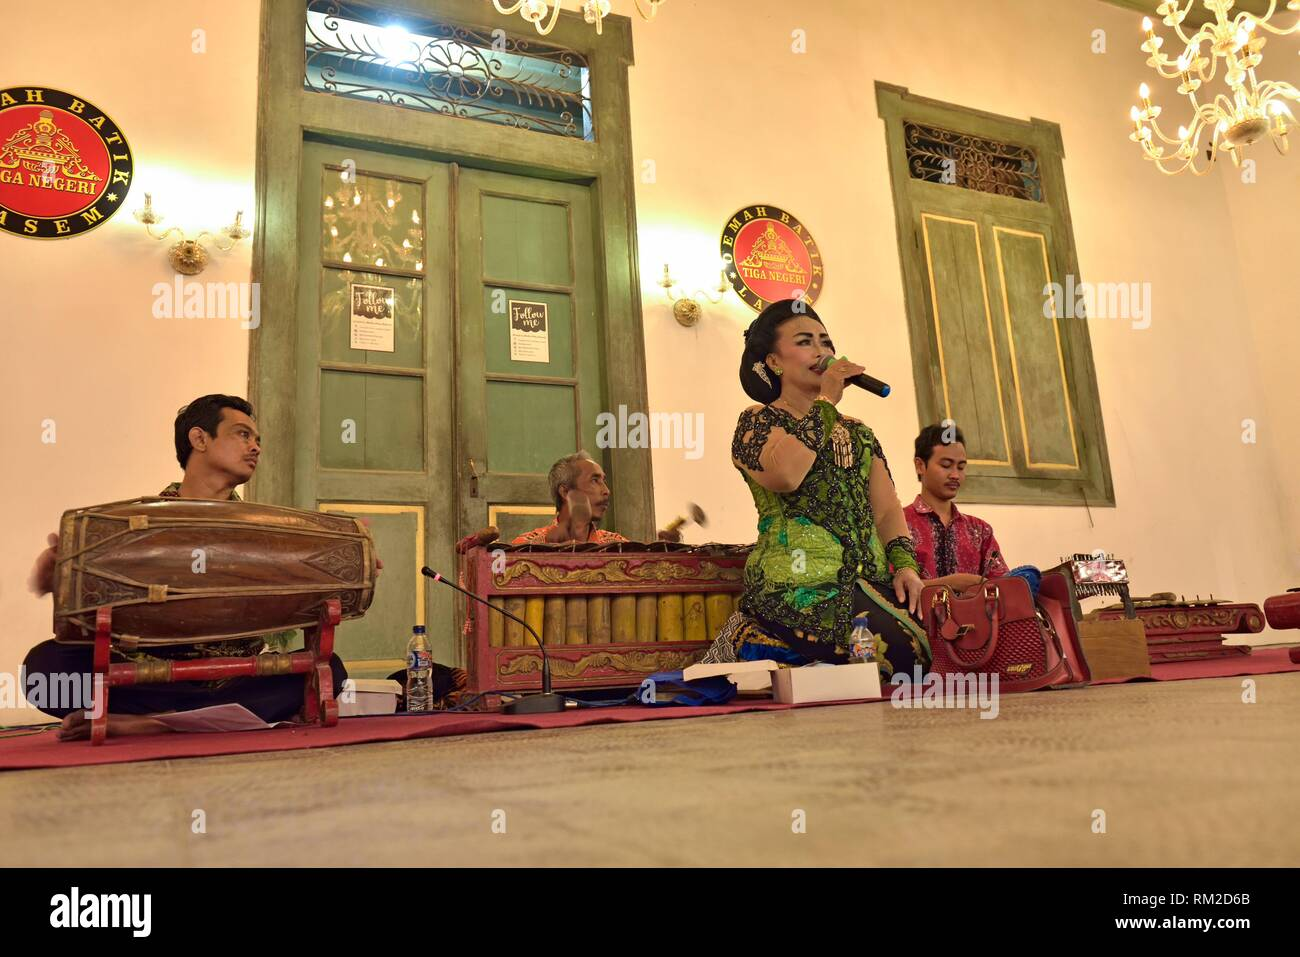 Javanese performance (gamelan) at Tiongkok Kecil Heritage Centre, Lasem, Java island, Indonesia, Southeast Asia. - Stock Image